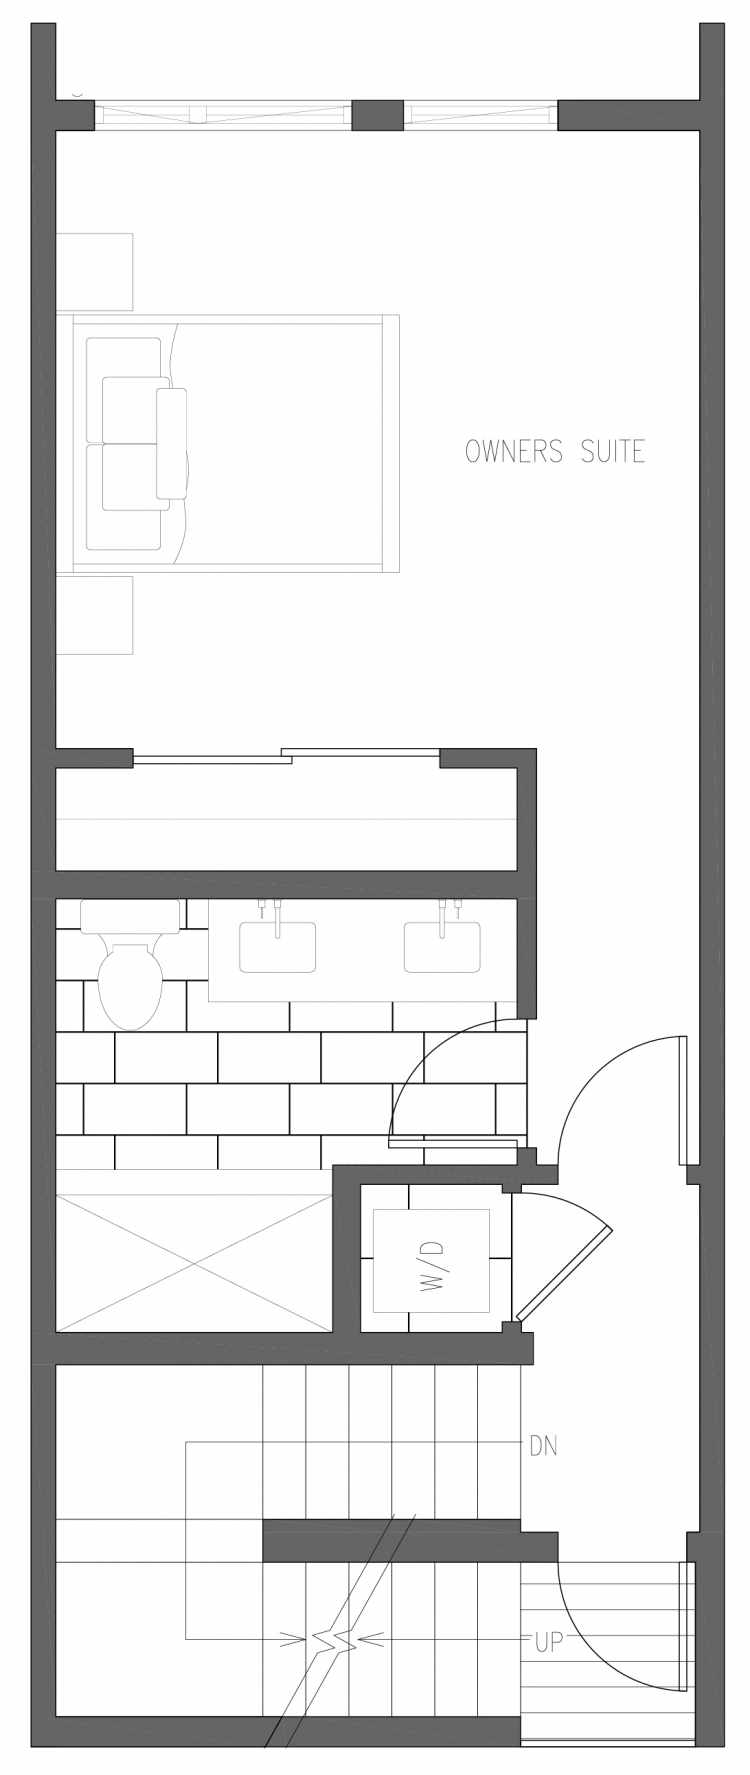 Third Floor Plan of 6417 14th Ave NW, One of the Oleana Townhomes in Ballard by Isola Homes